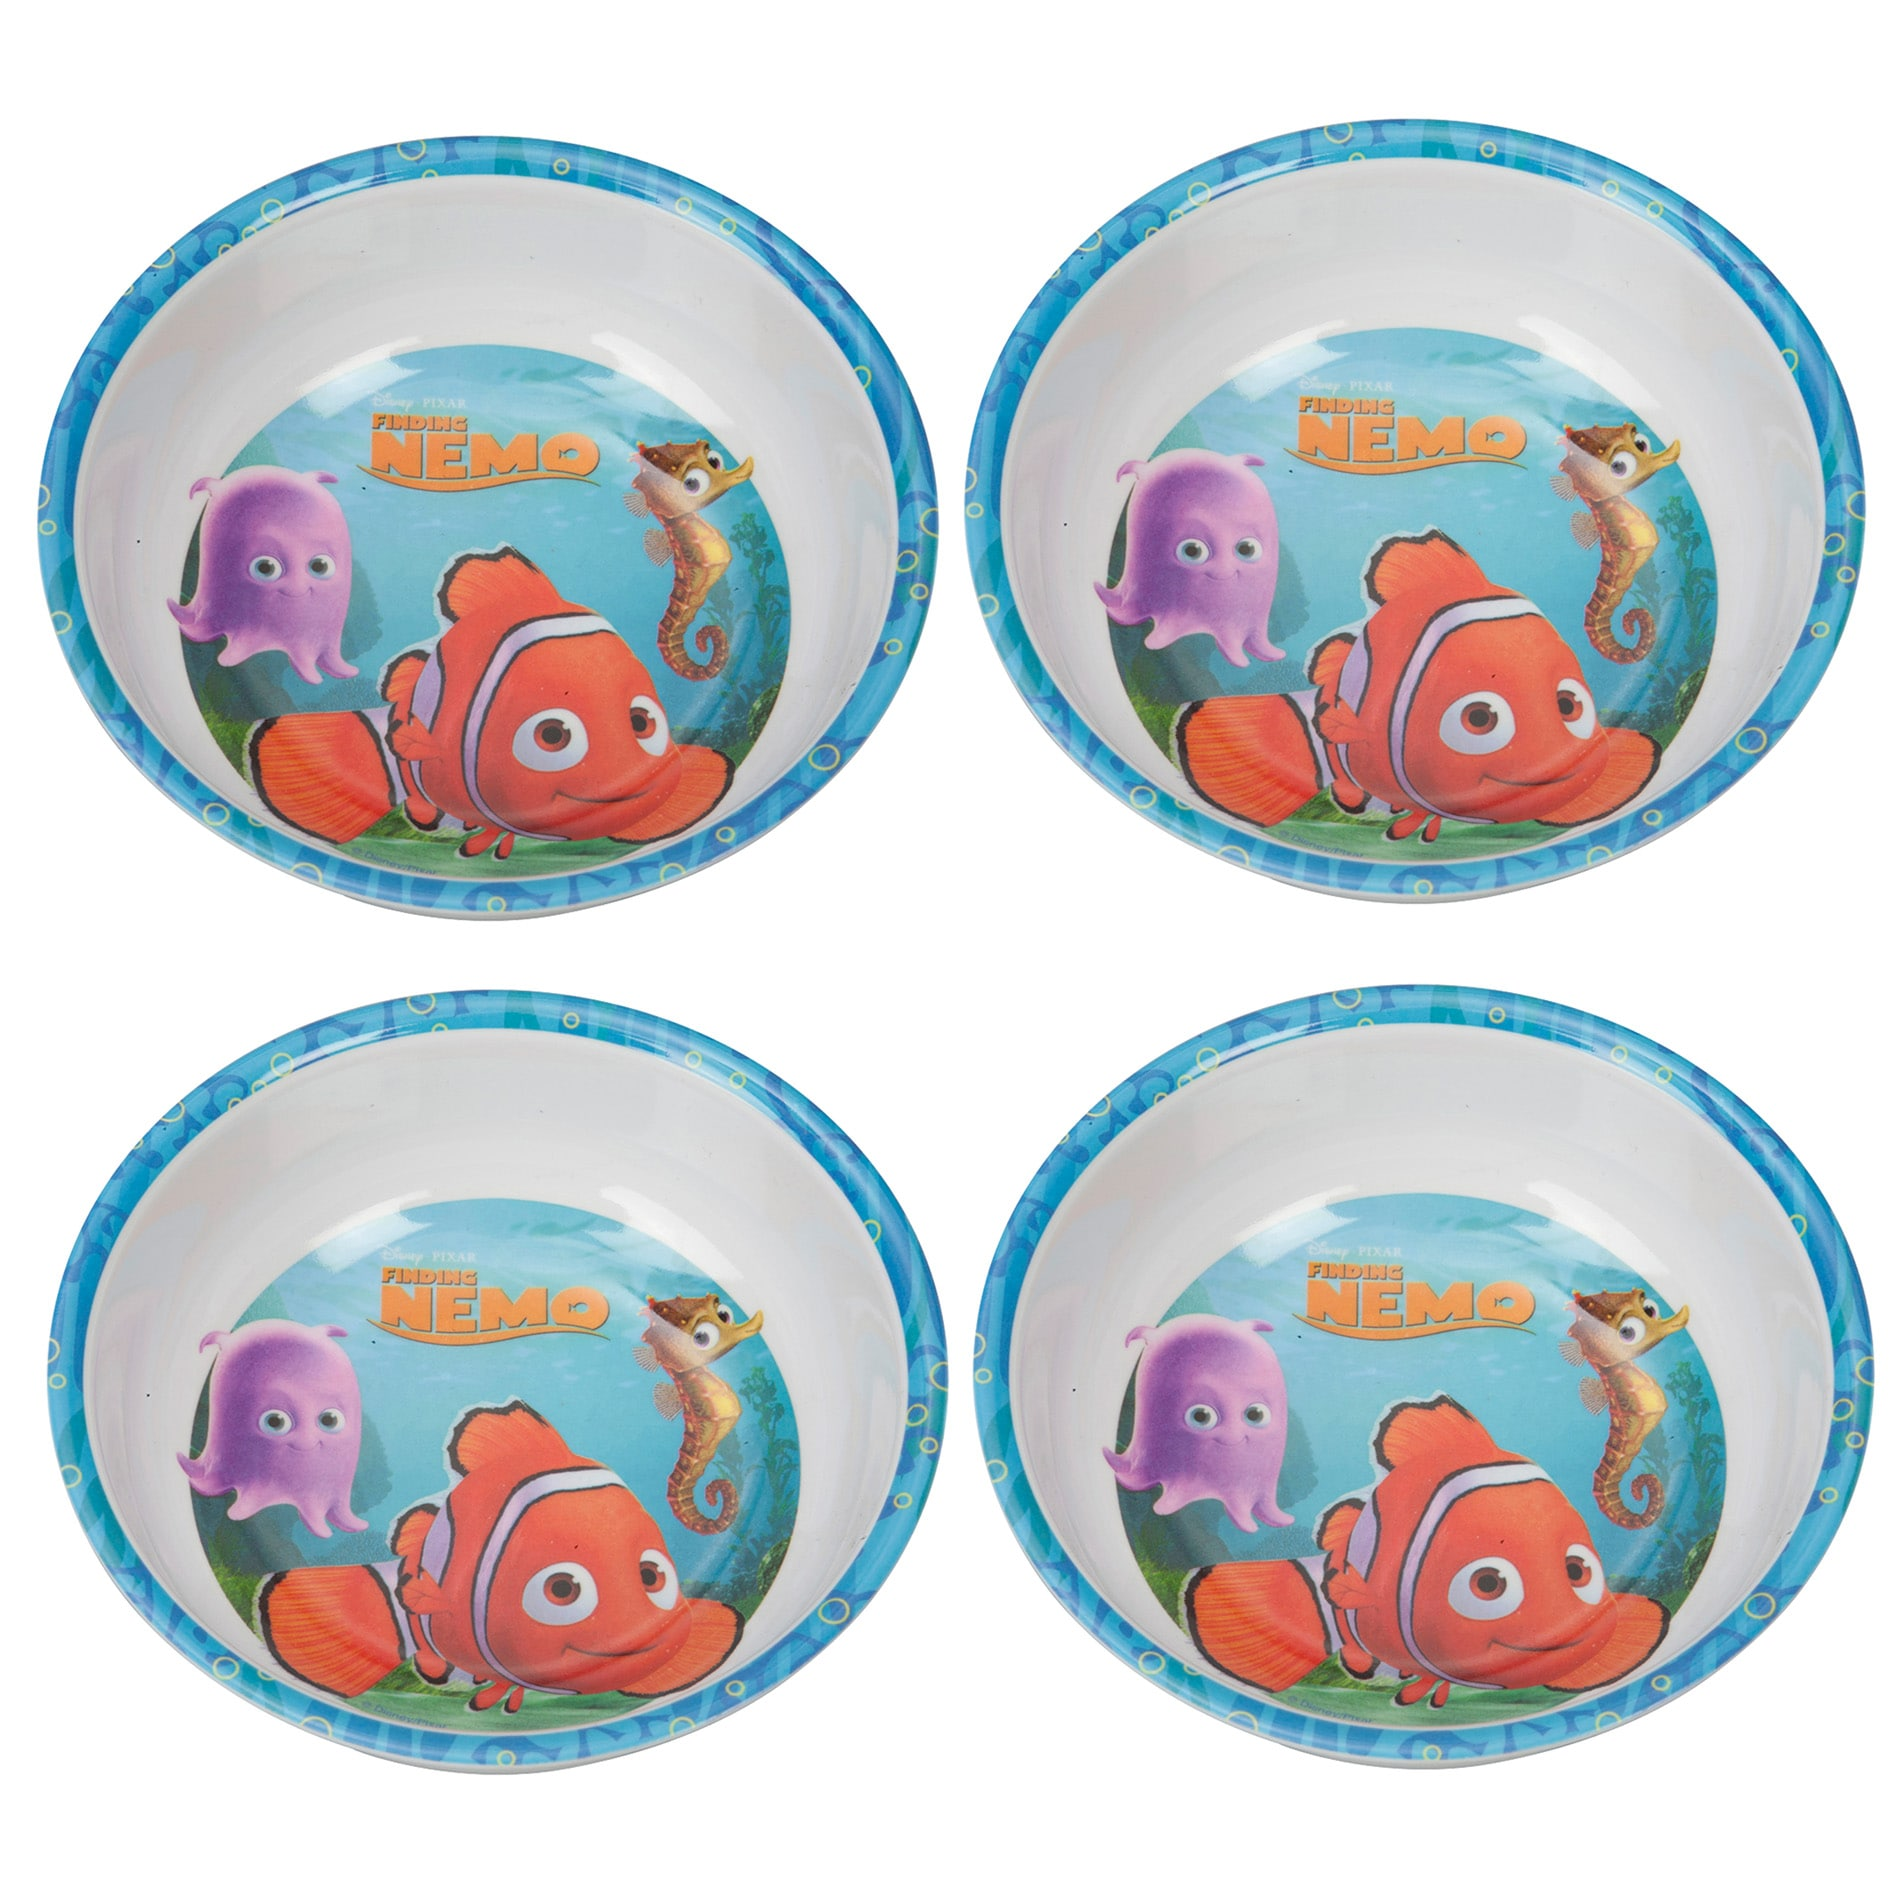 Finding Nemo 6-inch Bowls (Set of 4)